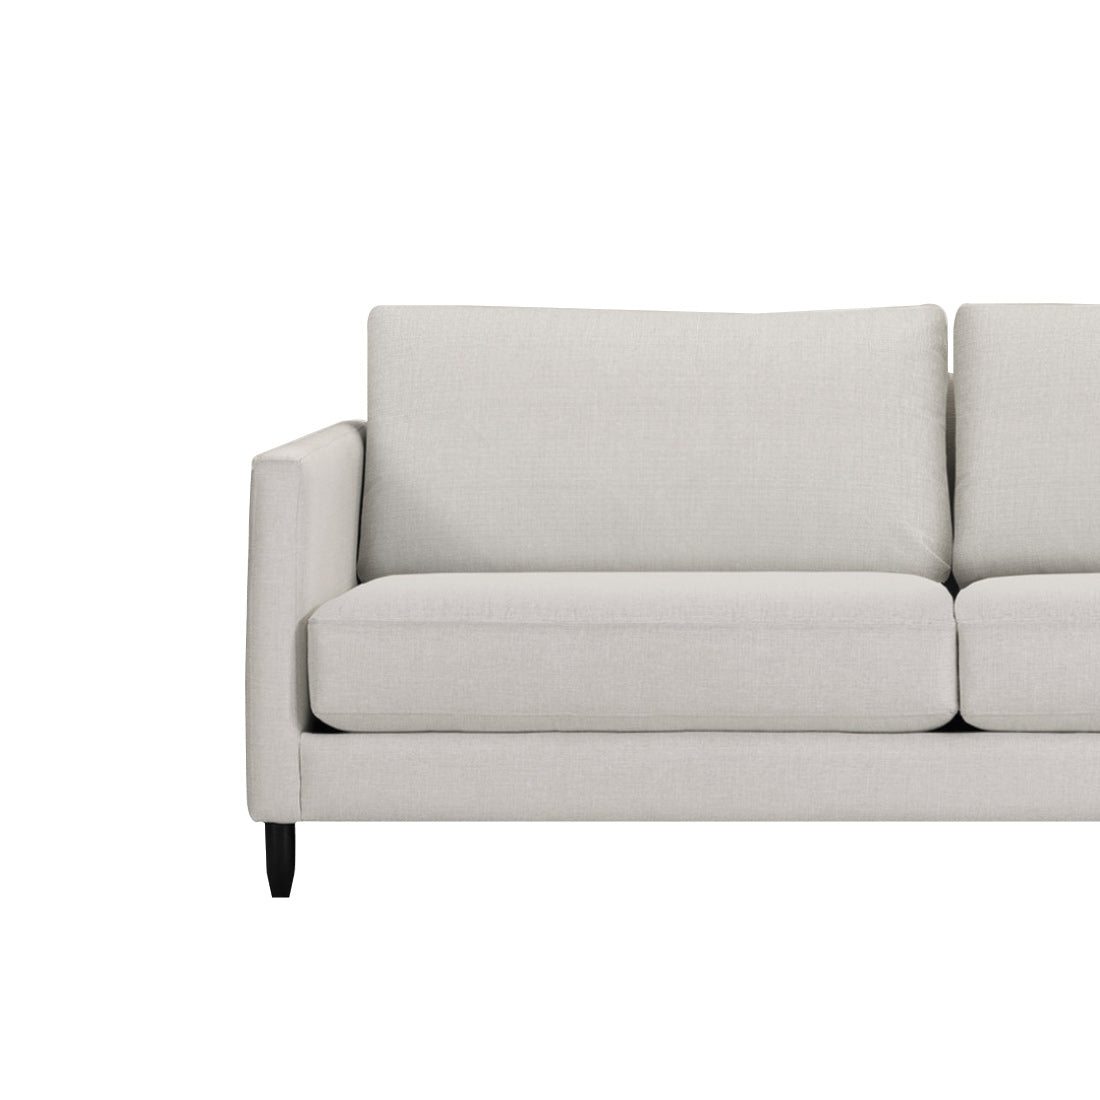 "Jude 70"" Apartment Sofa - Cove Light Grey - IN STOCK"